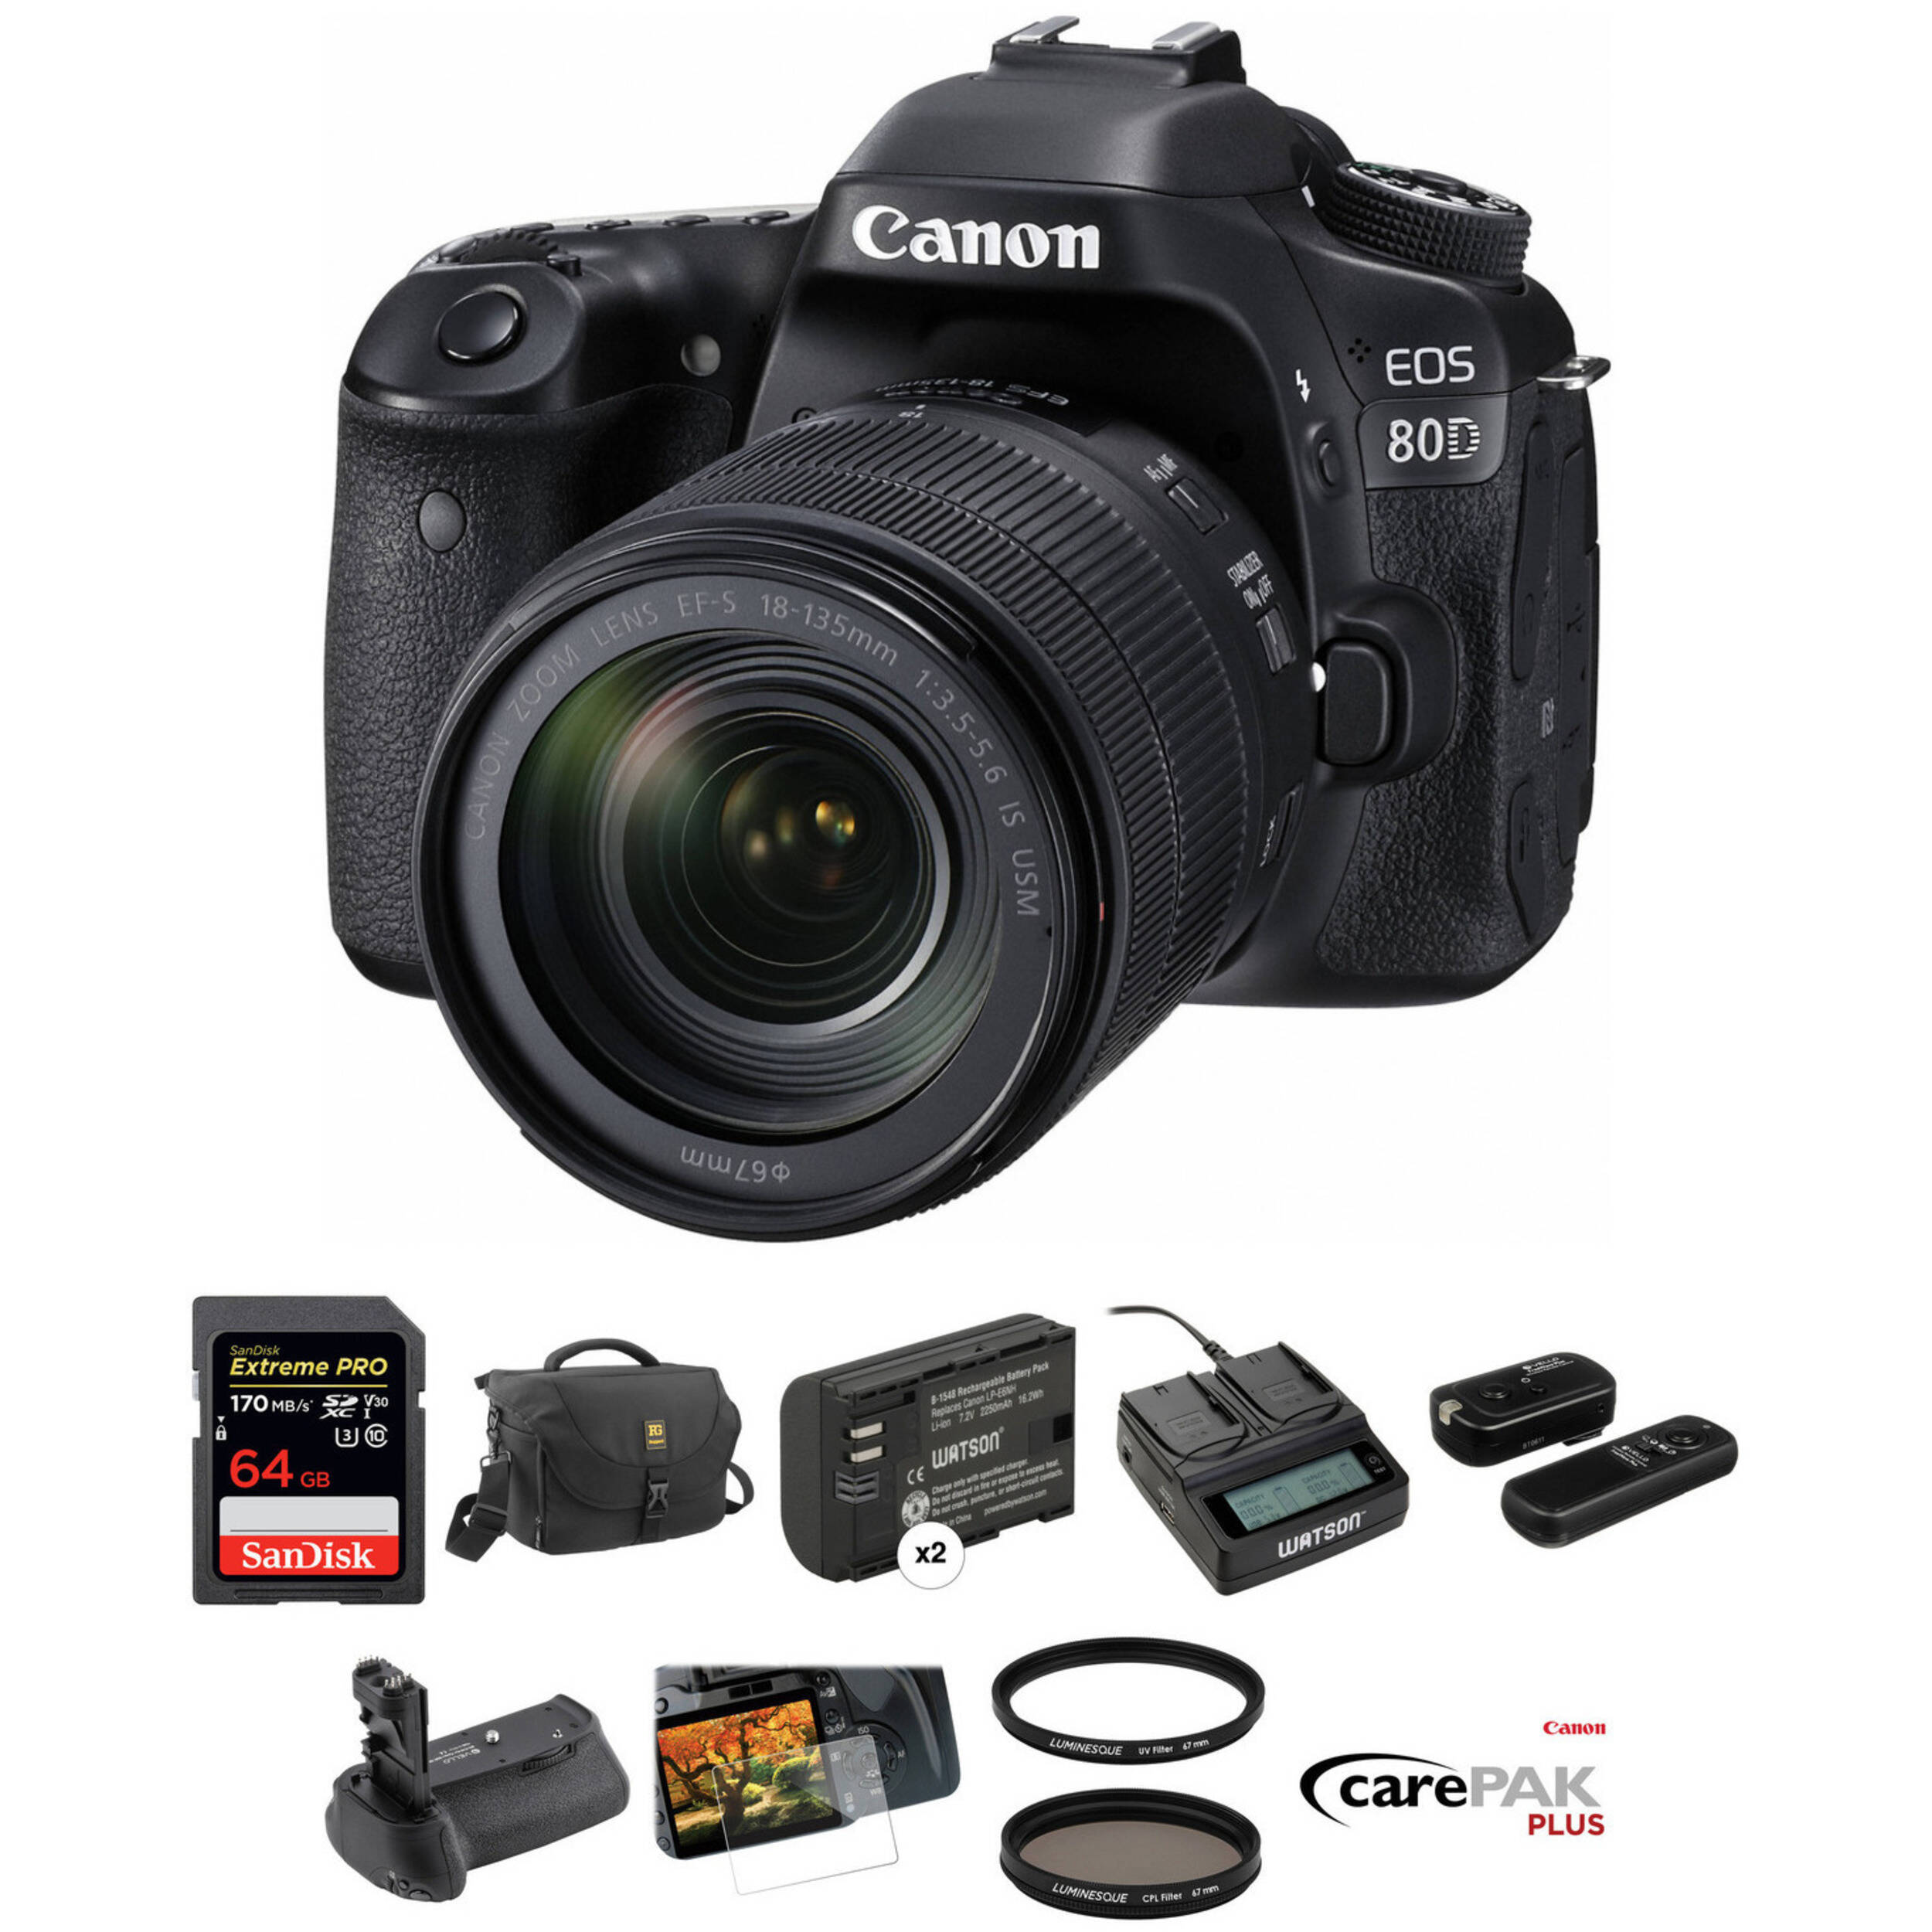 2a49396af891 Canon EOS 80D DSLR Camera with 18-135mm Lens Deluxe Kit B H